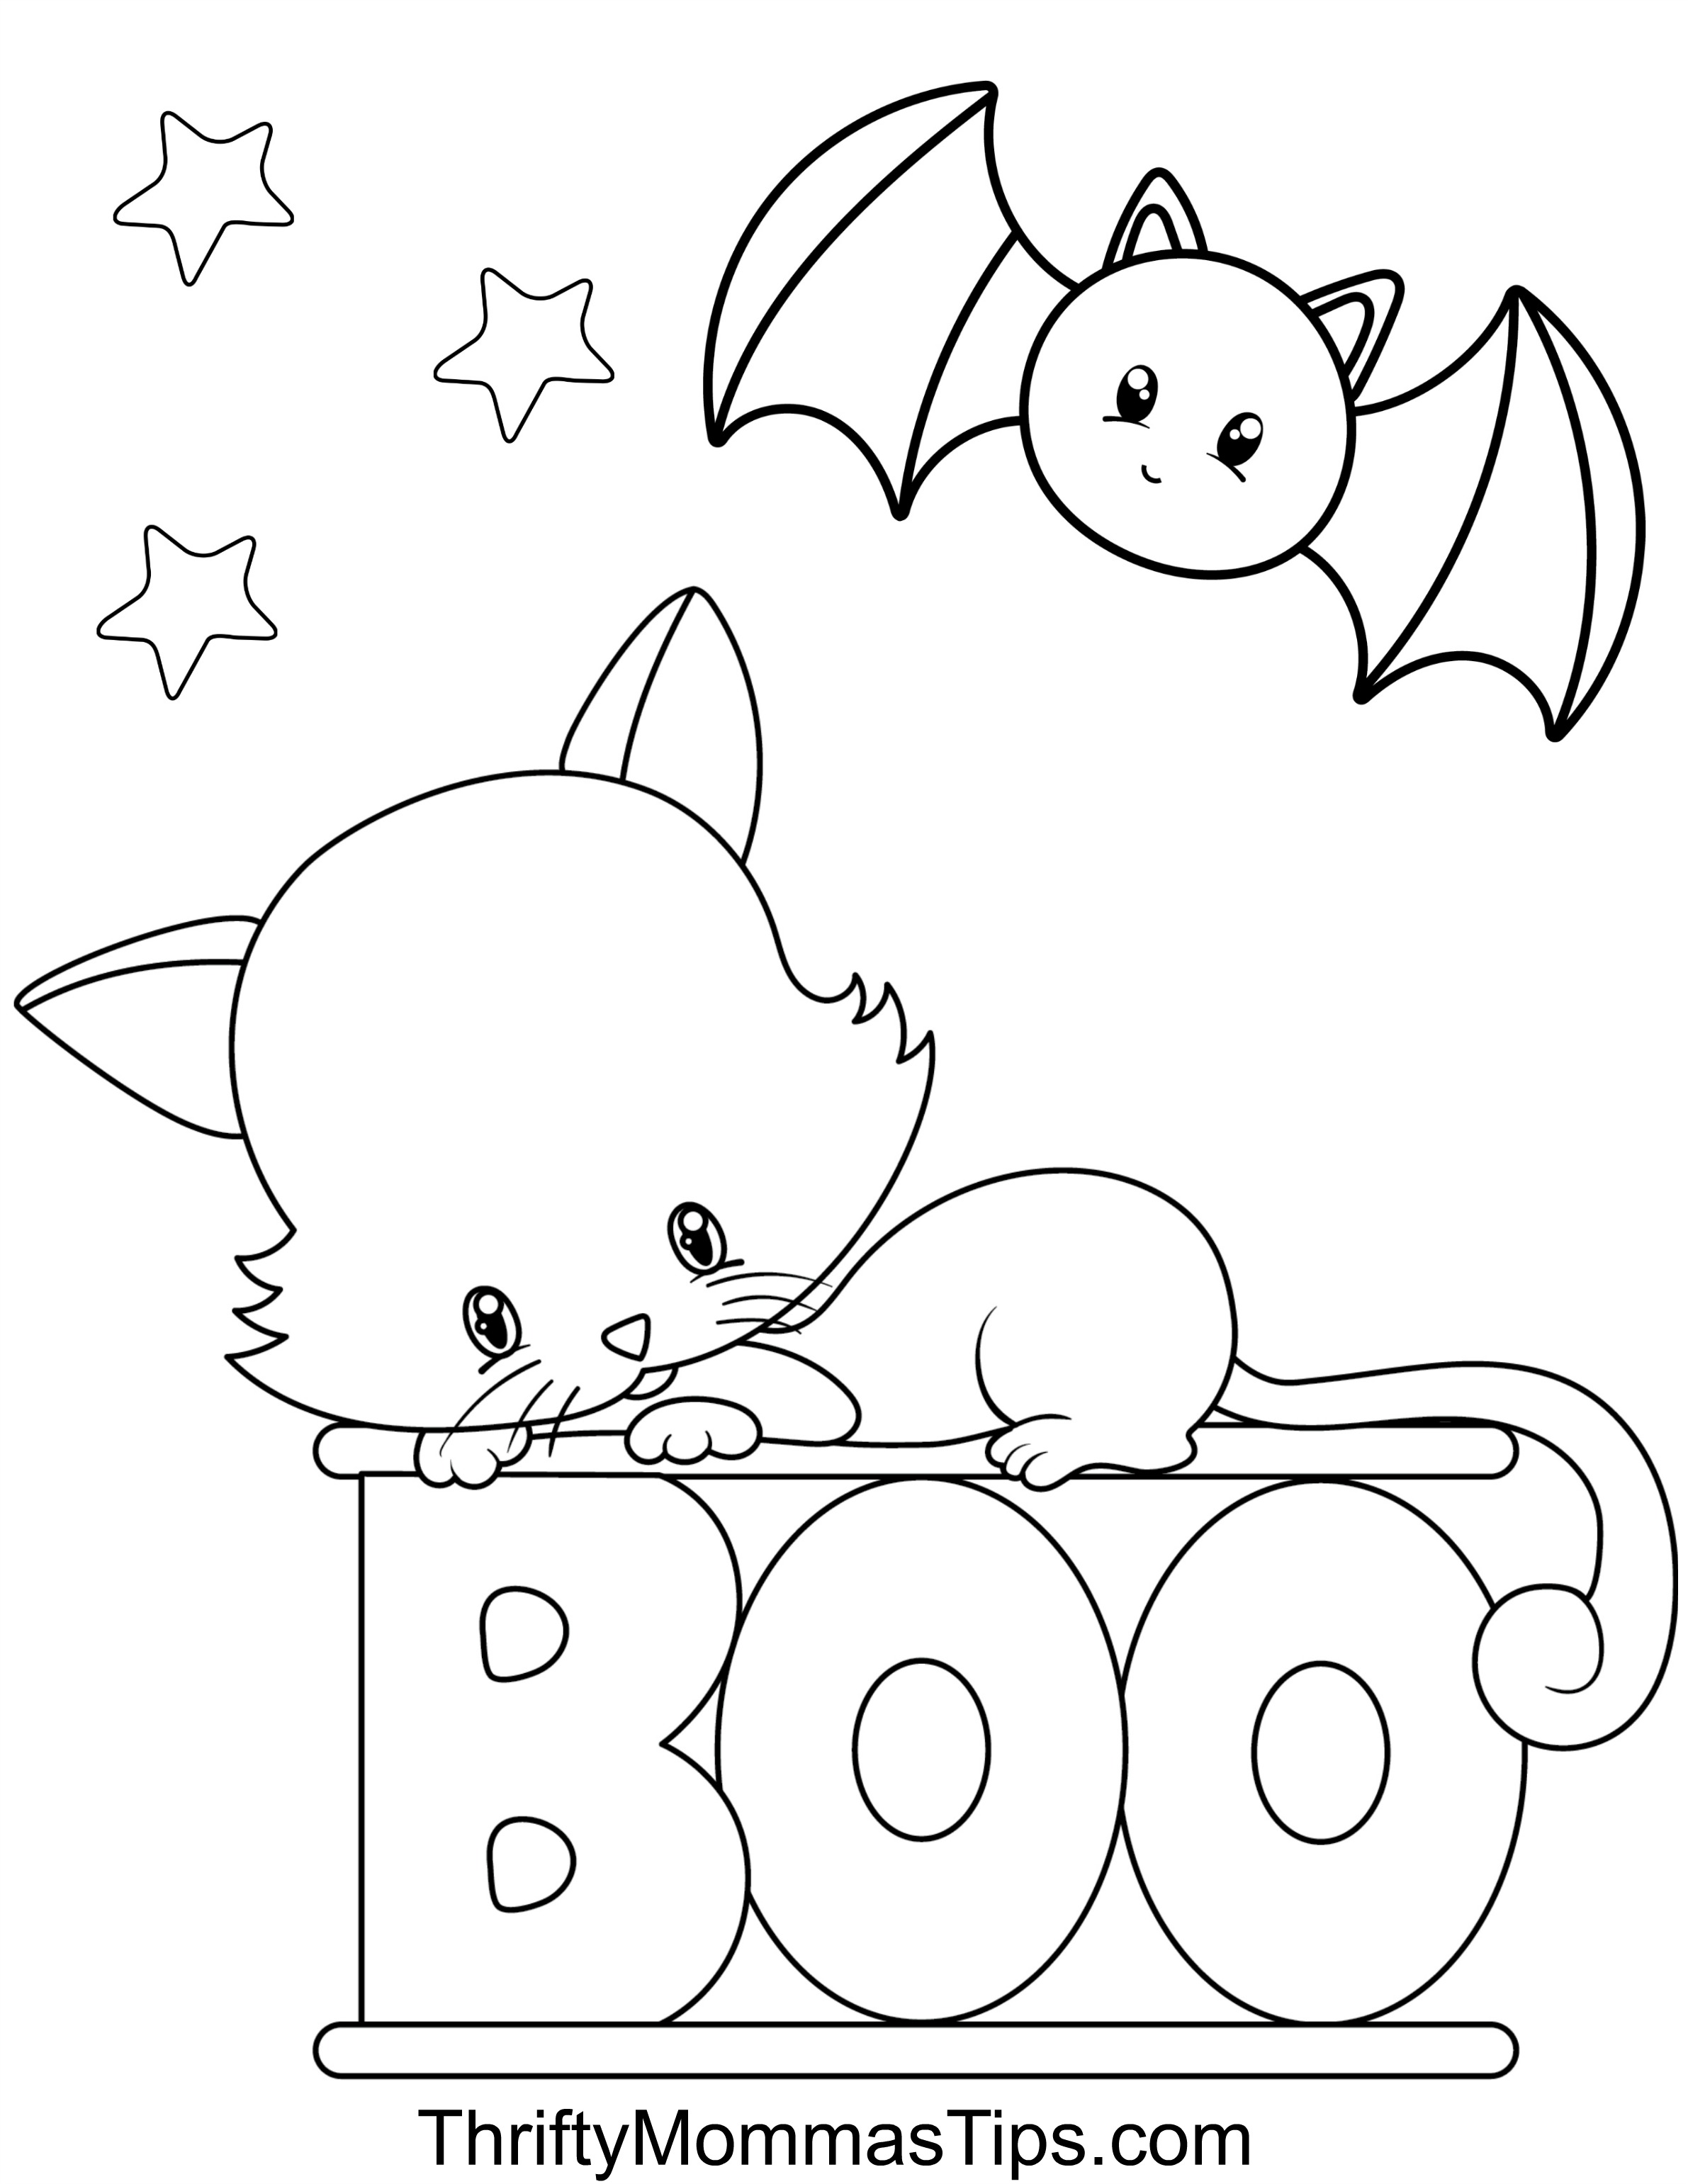 halloween cat coloring pages halloween cats colouring book 9 pages thrifty mommas tips halloween pages cat coloring